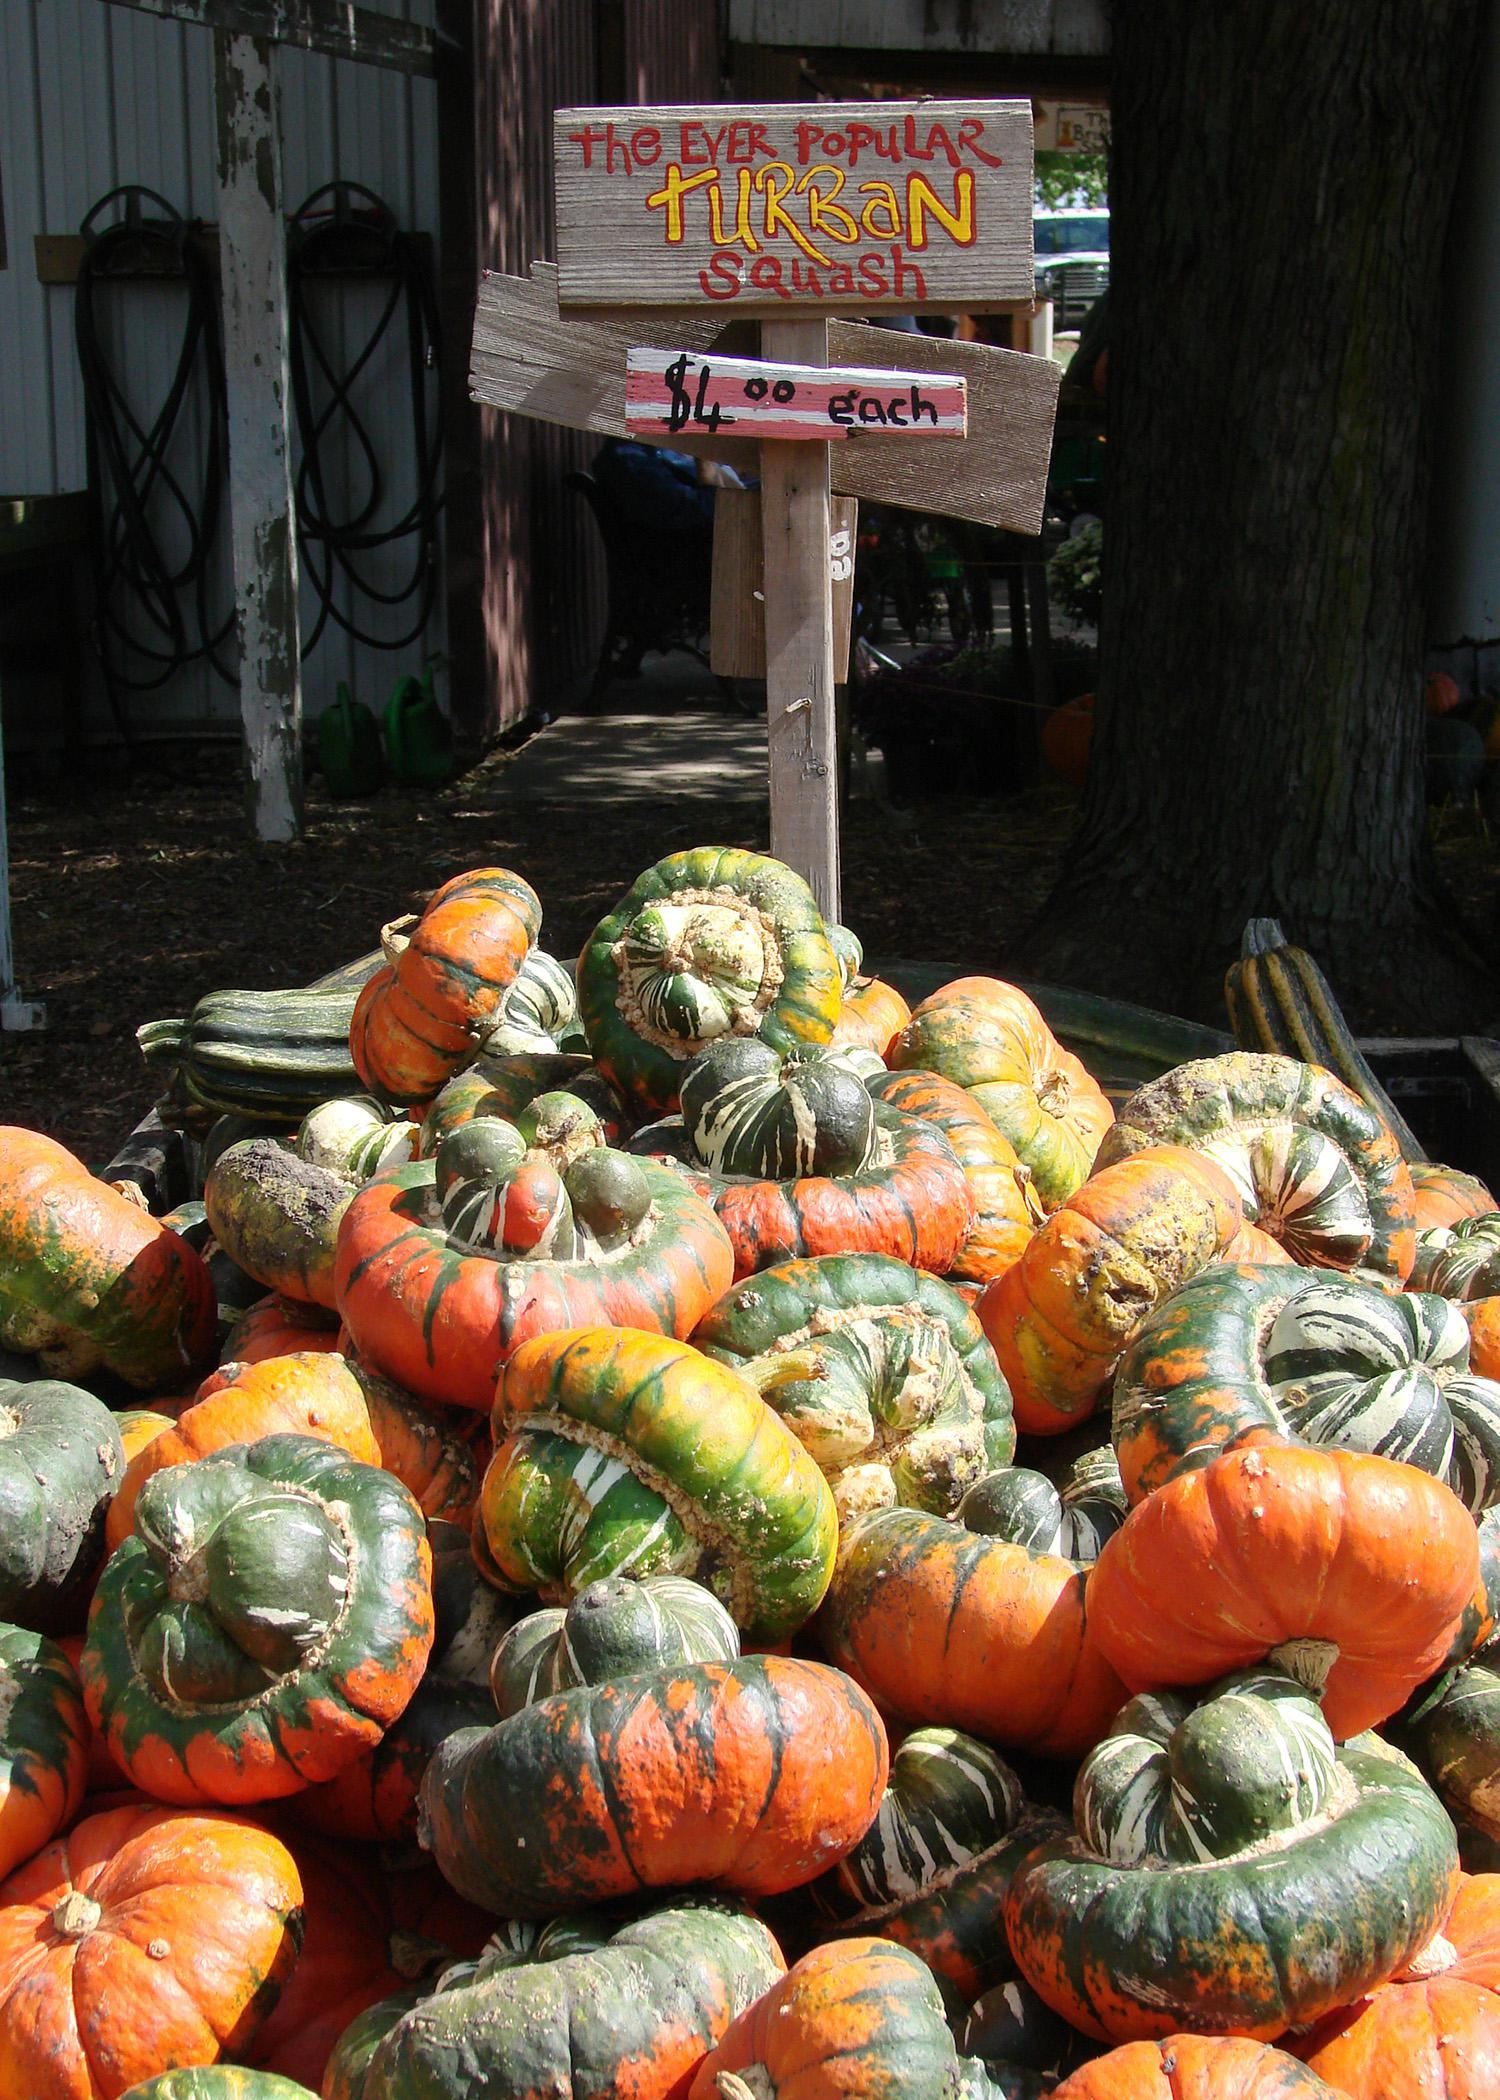 Turban squash is a popular, hat-shaped variety that Native Americans grew. The bulb-like top makes a good fall decoration with its bizarre shape and multicolored stripes. (Photo by MSU Extension Service/Gary Bachman)